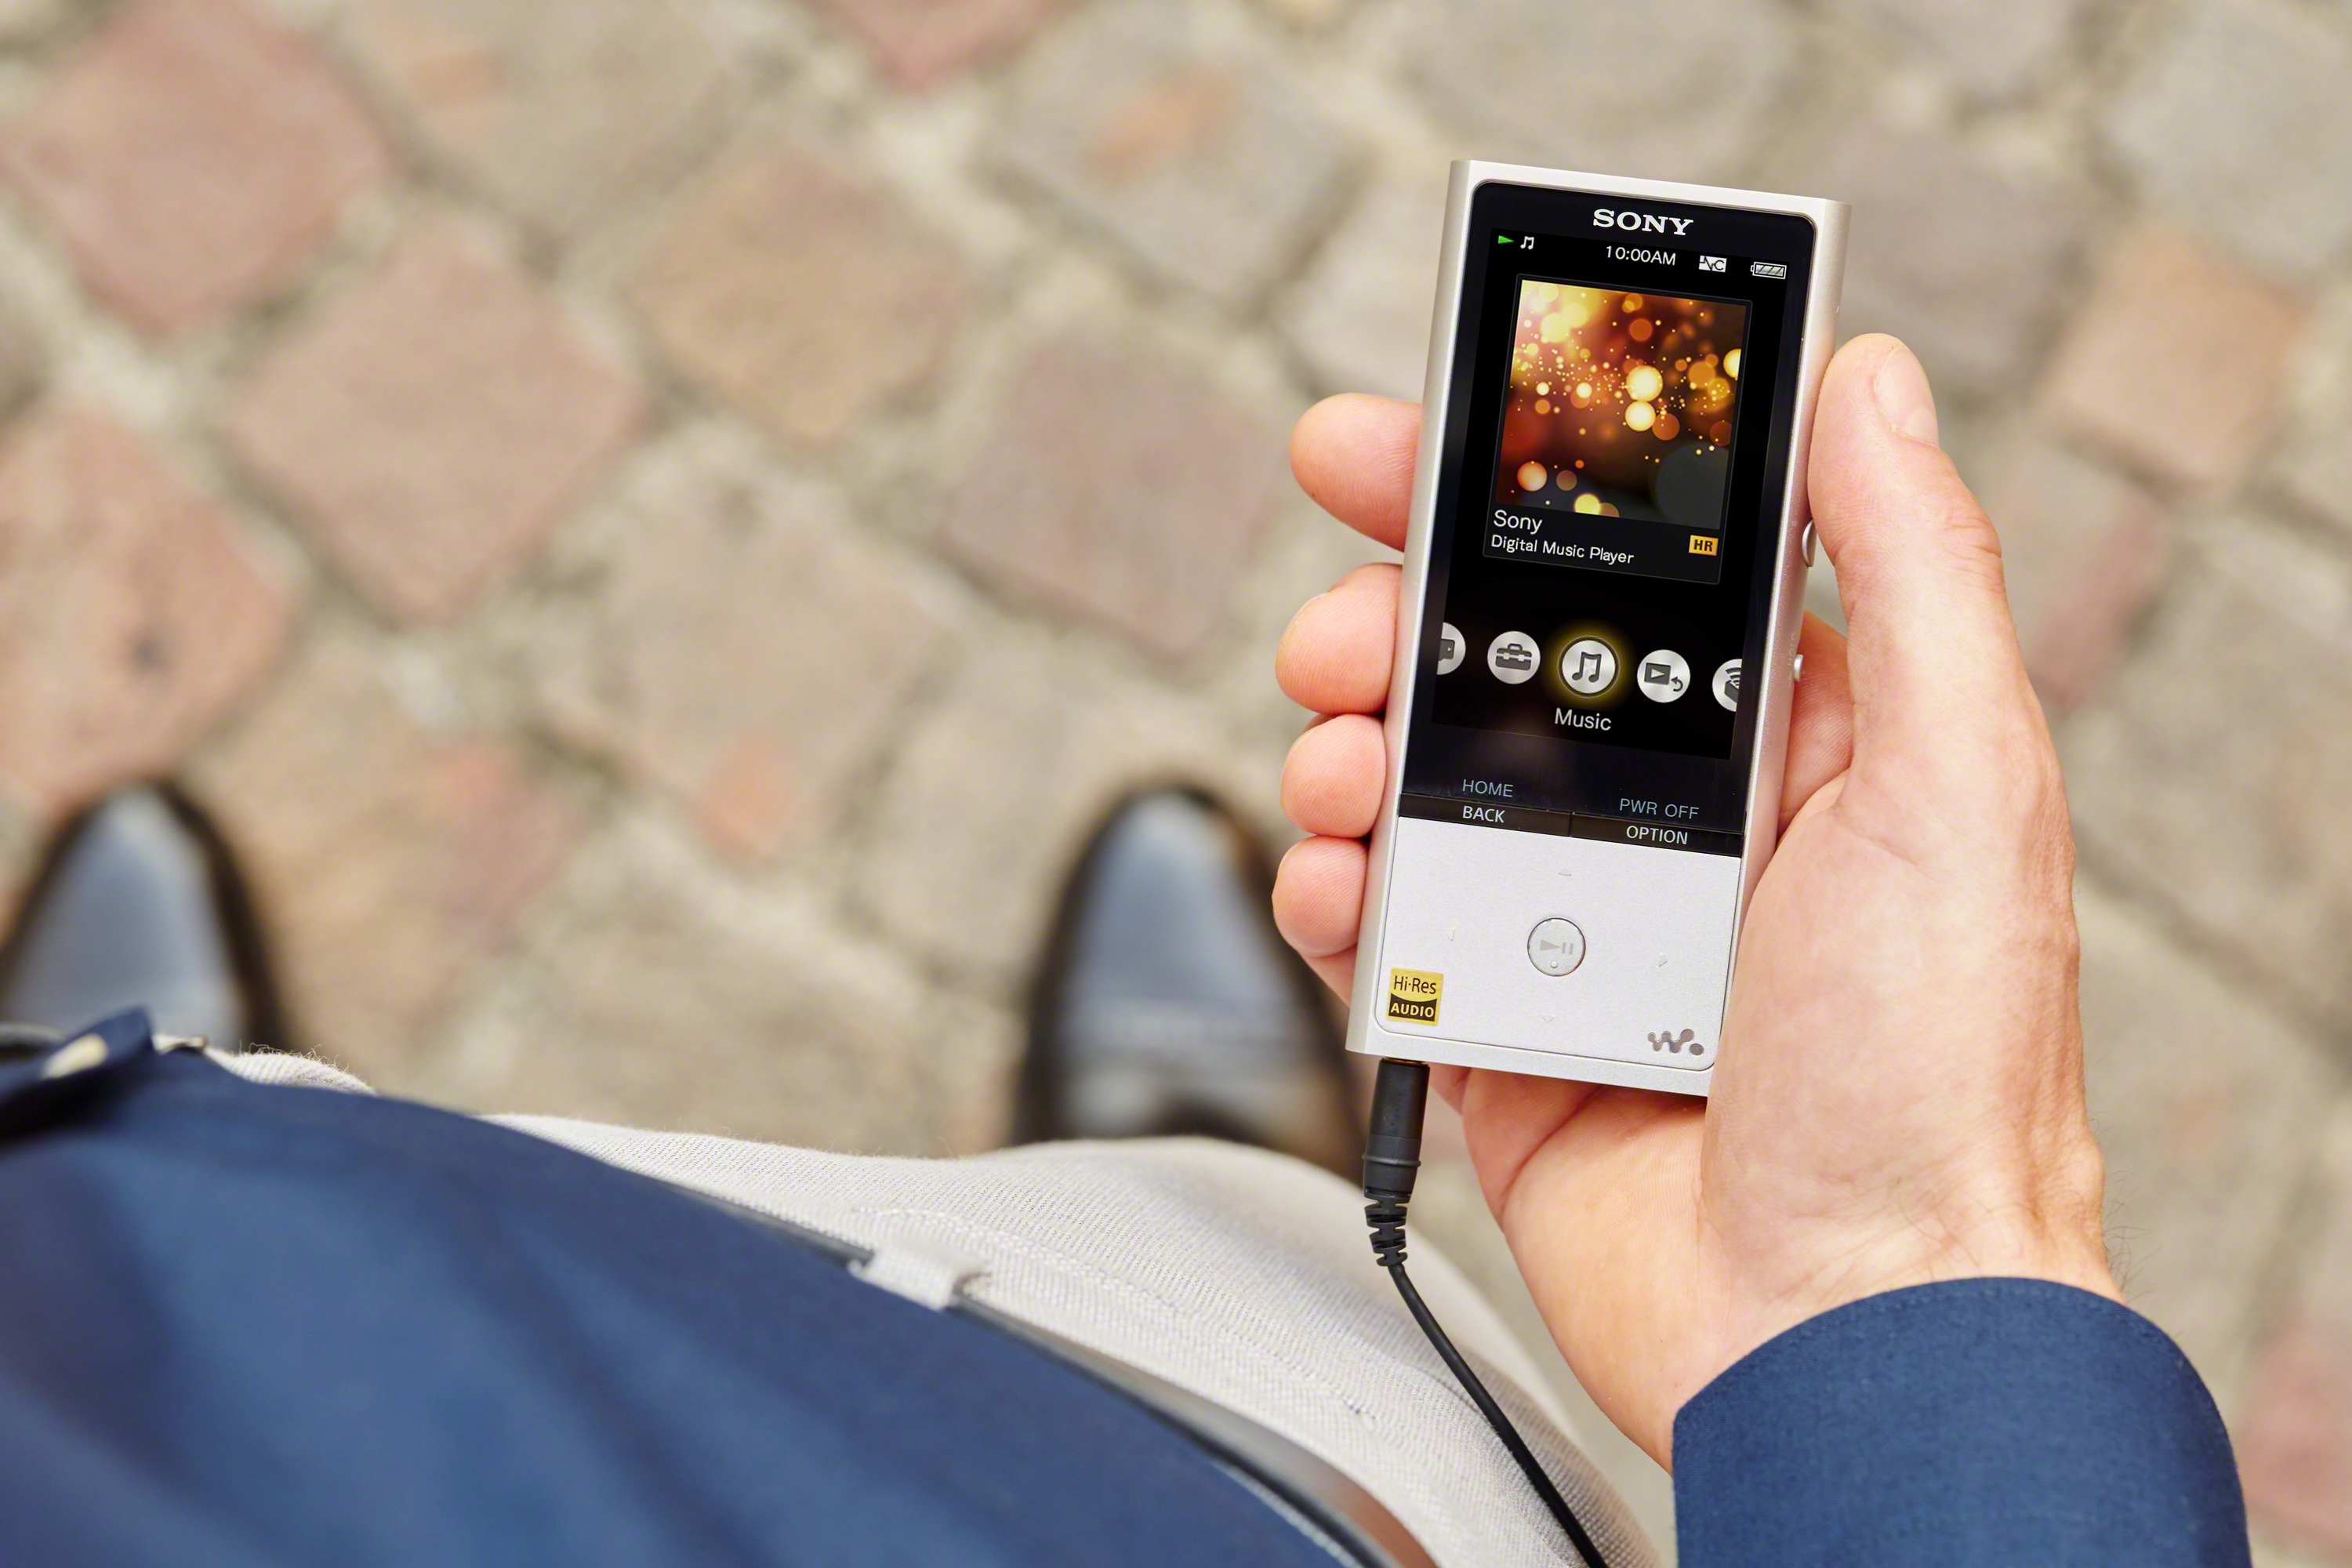 Best Audio Phones 2020 Why I don't agree that music downloads will be dead by 2020